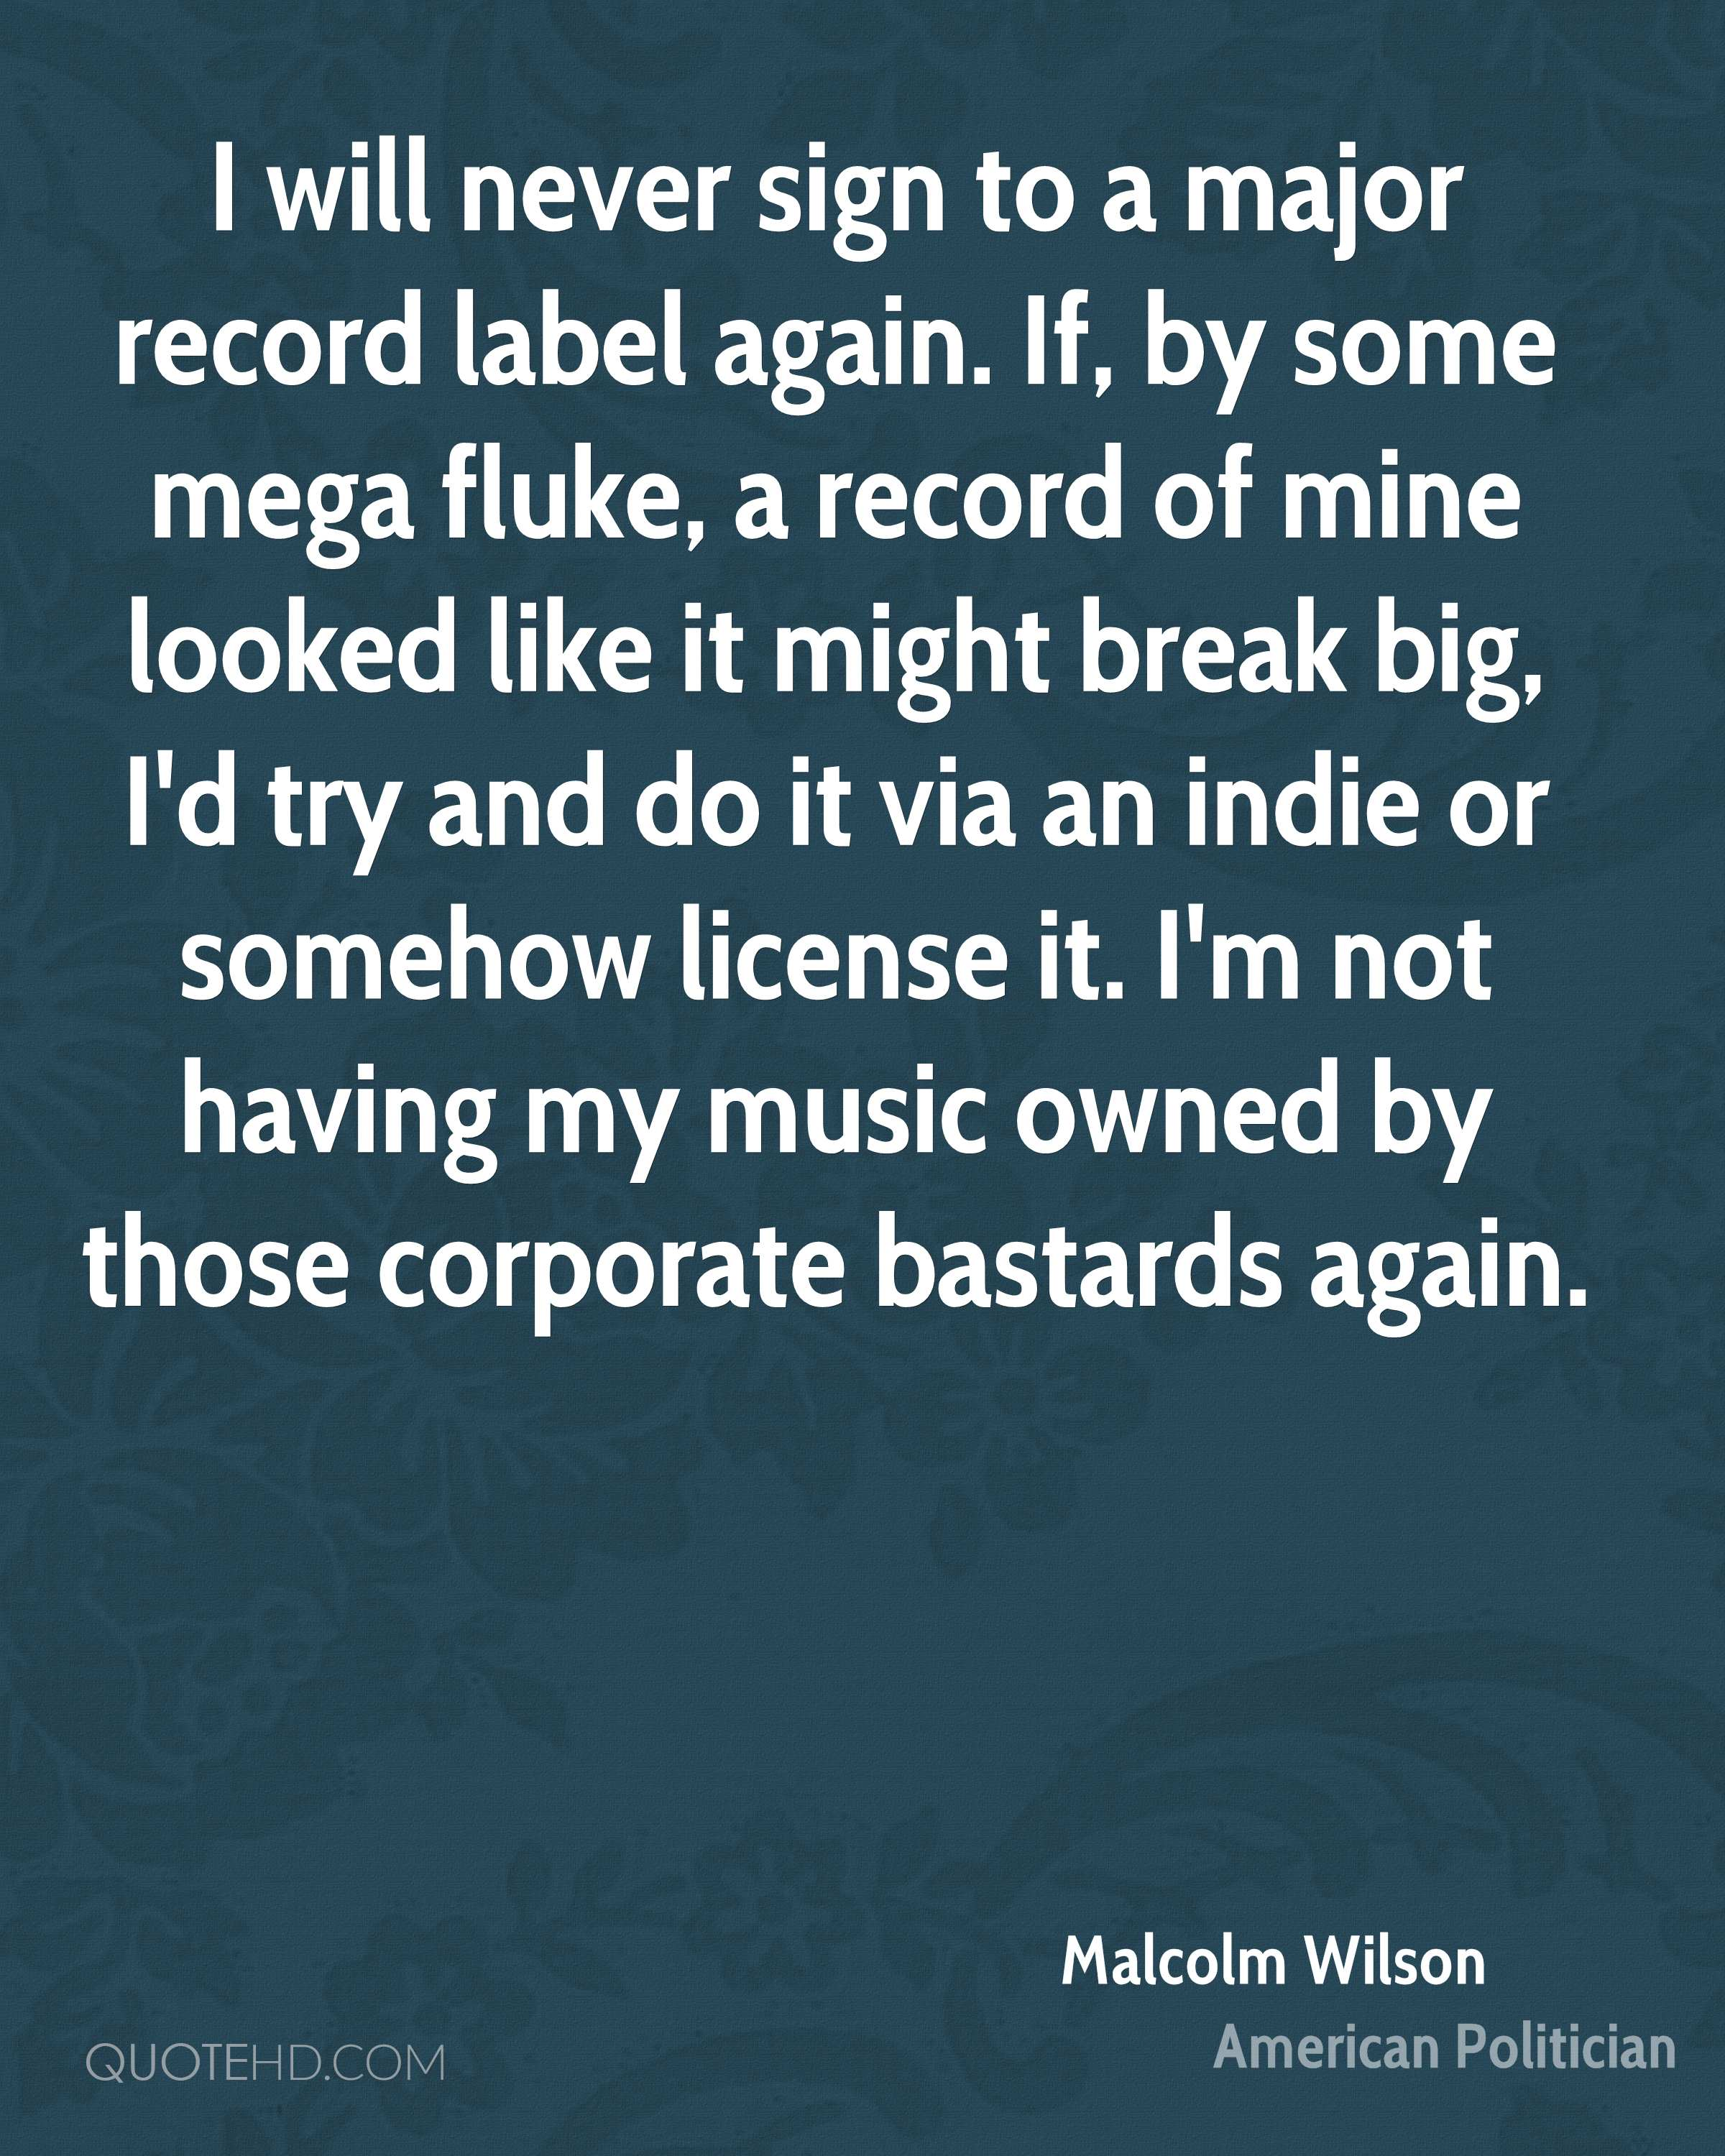 I will never sign to a major record label again. If, by some mega fluke, a record of mine looked like it might break big, I'd try and do it via an indie or somehow license it. I'm not having my music owned by those corporate bastards again.